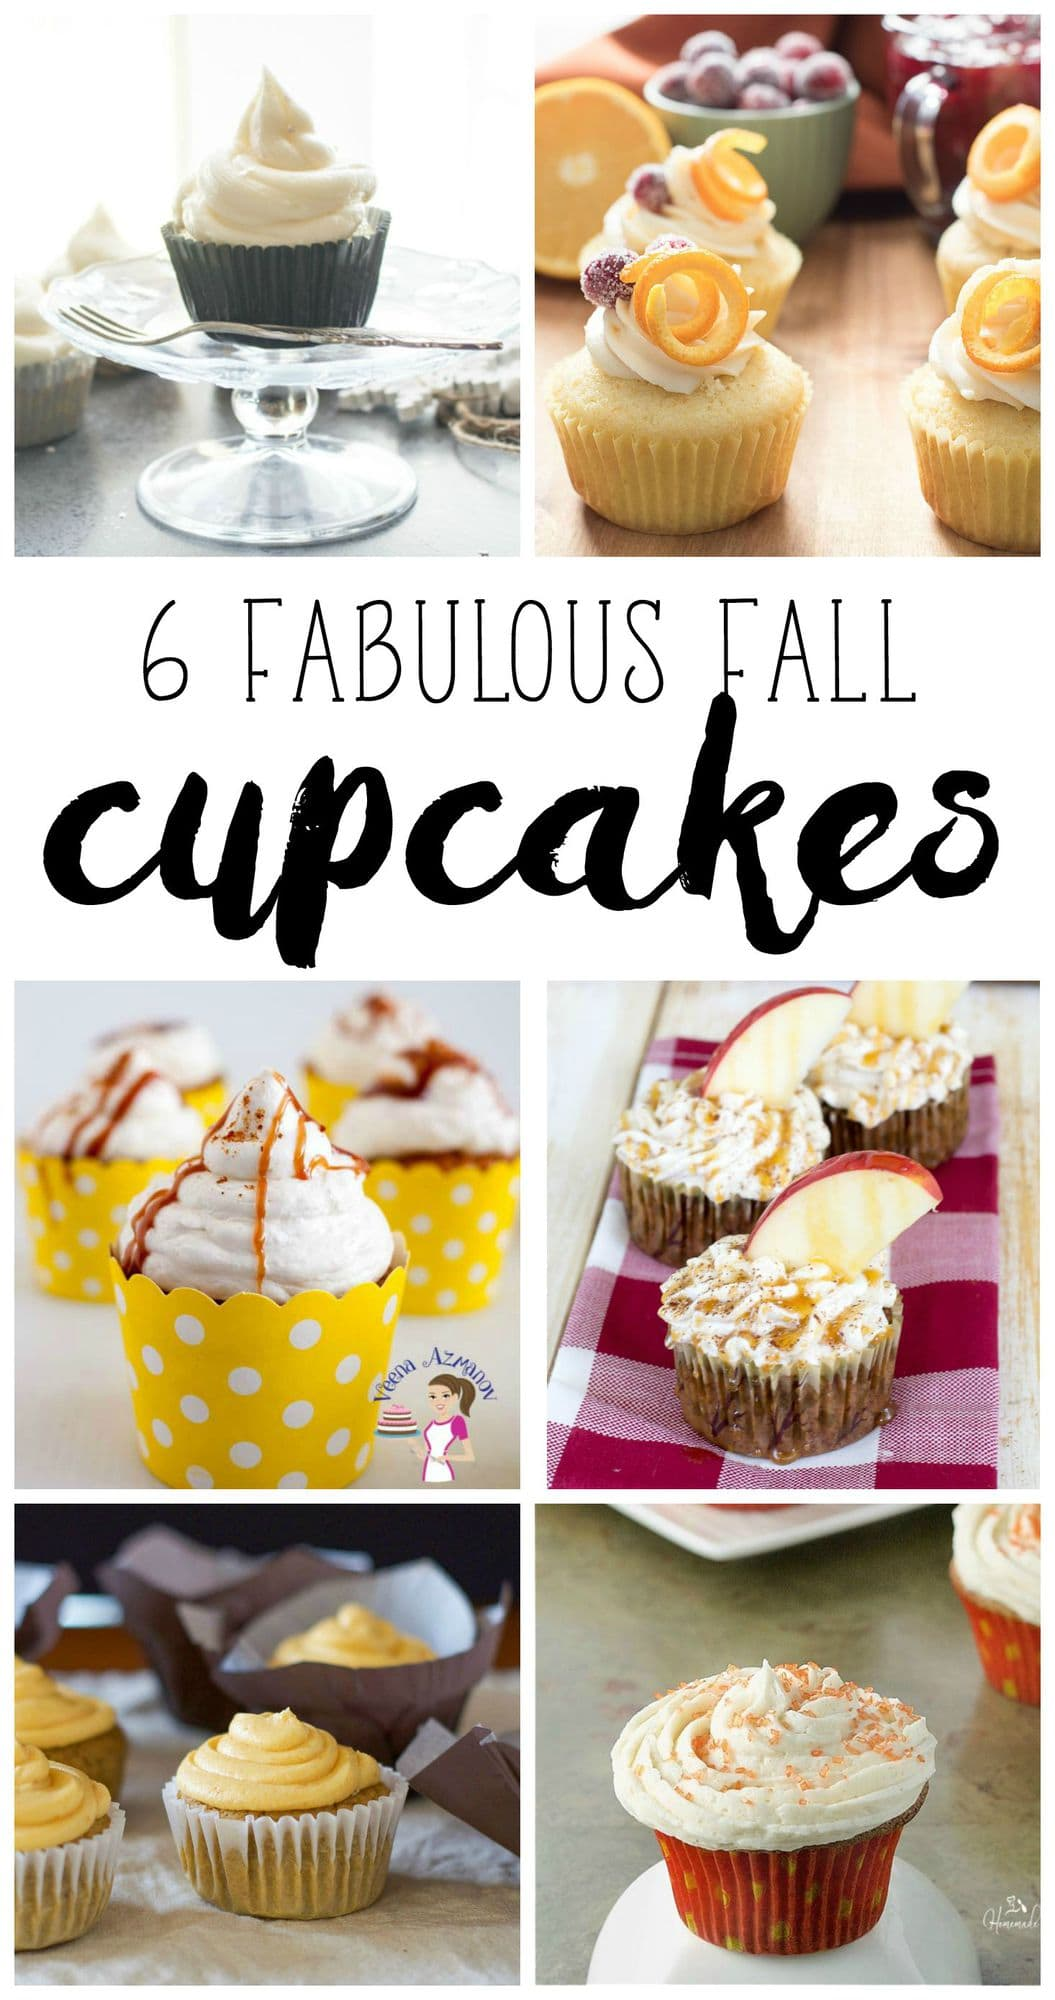 6 Fabulous Fall Cupcakes Recipes via #foodbloggenious flouronmyface.com